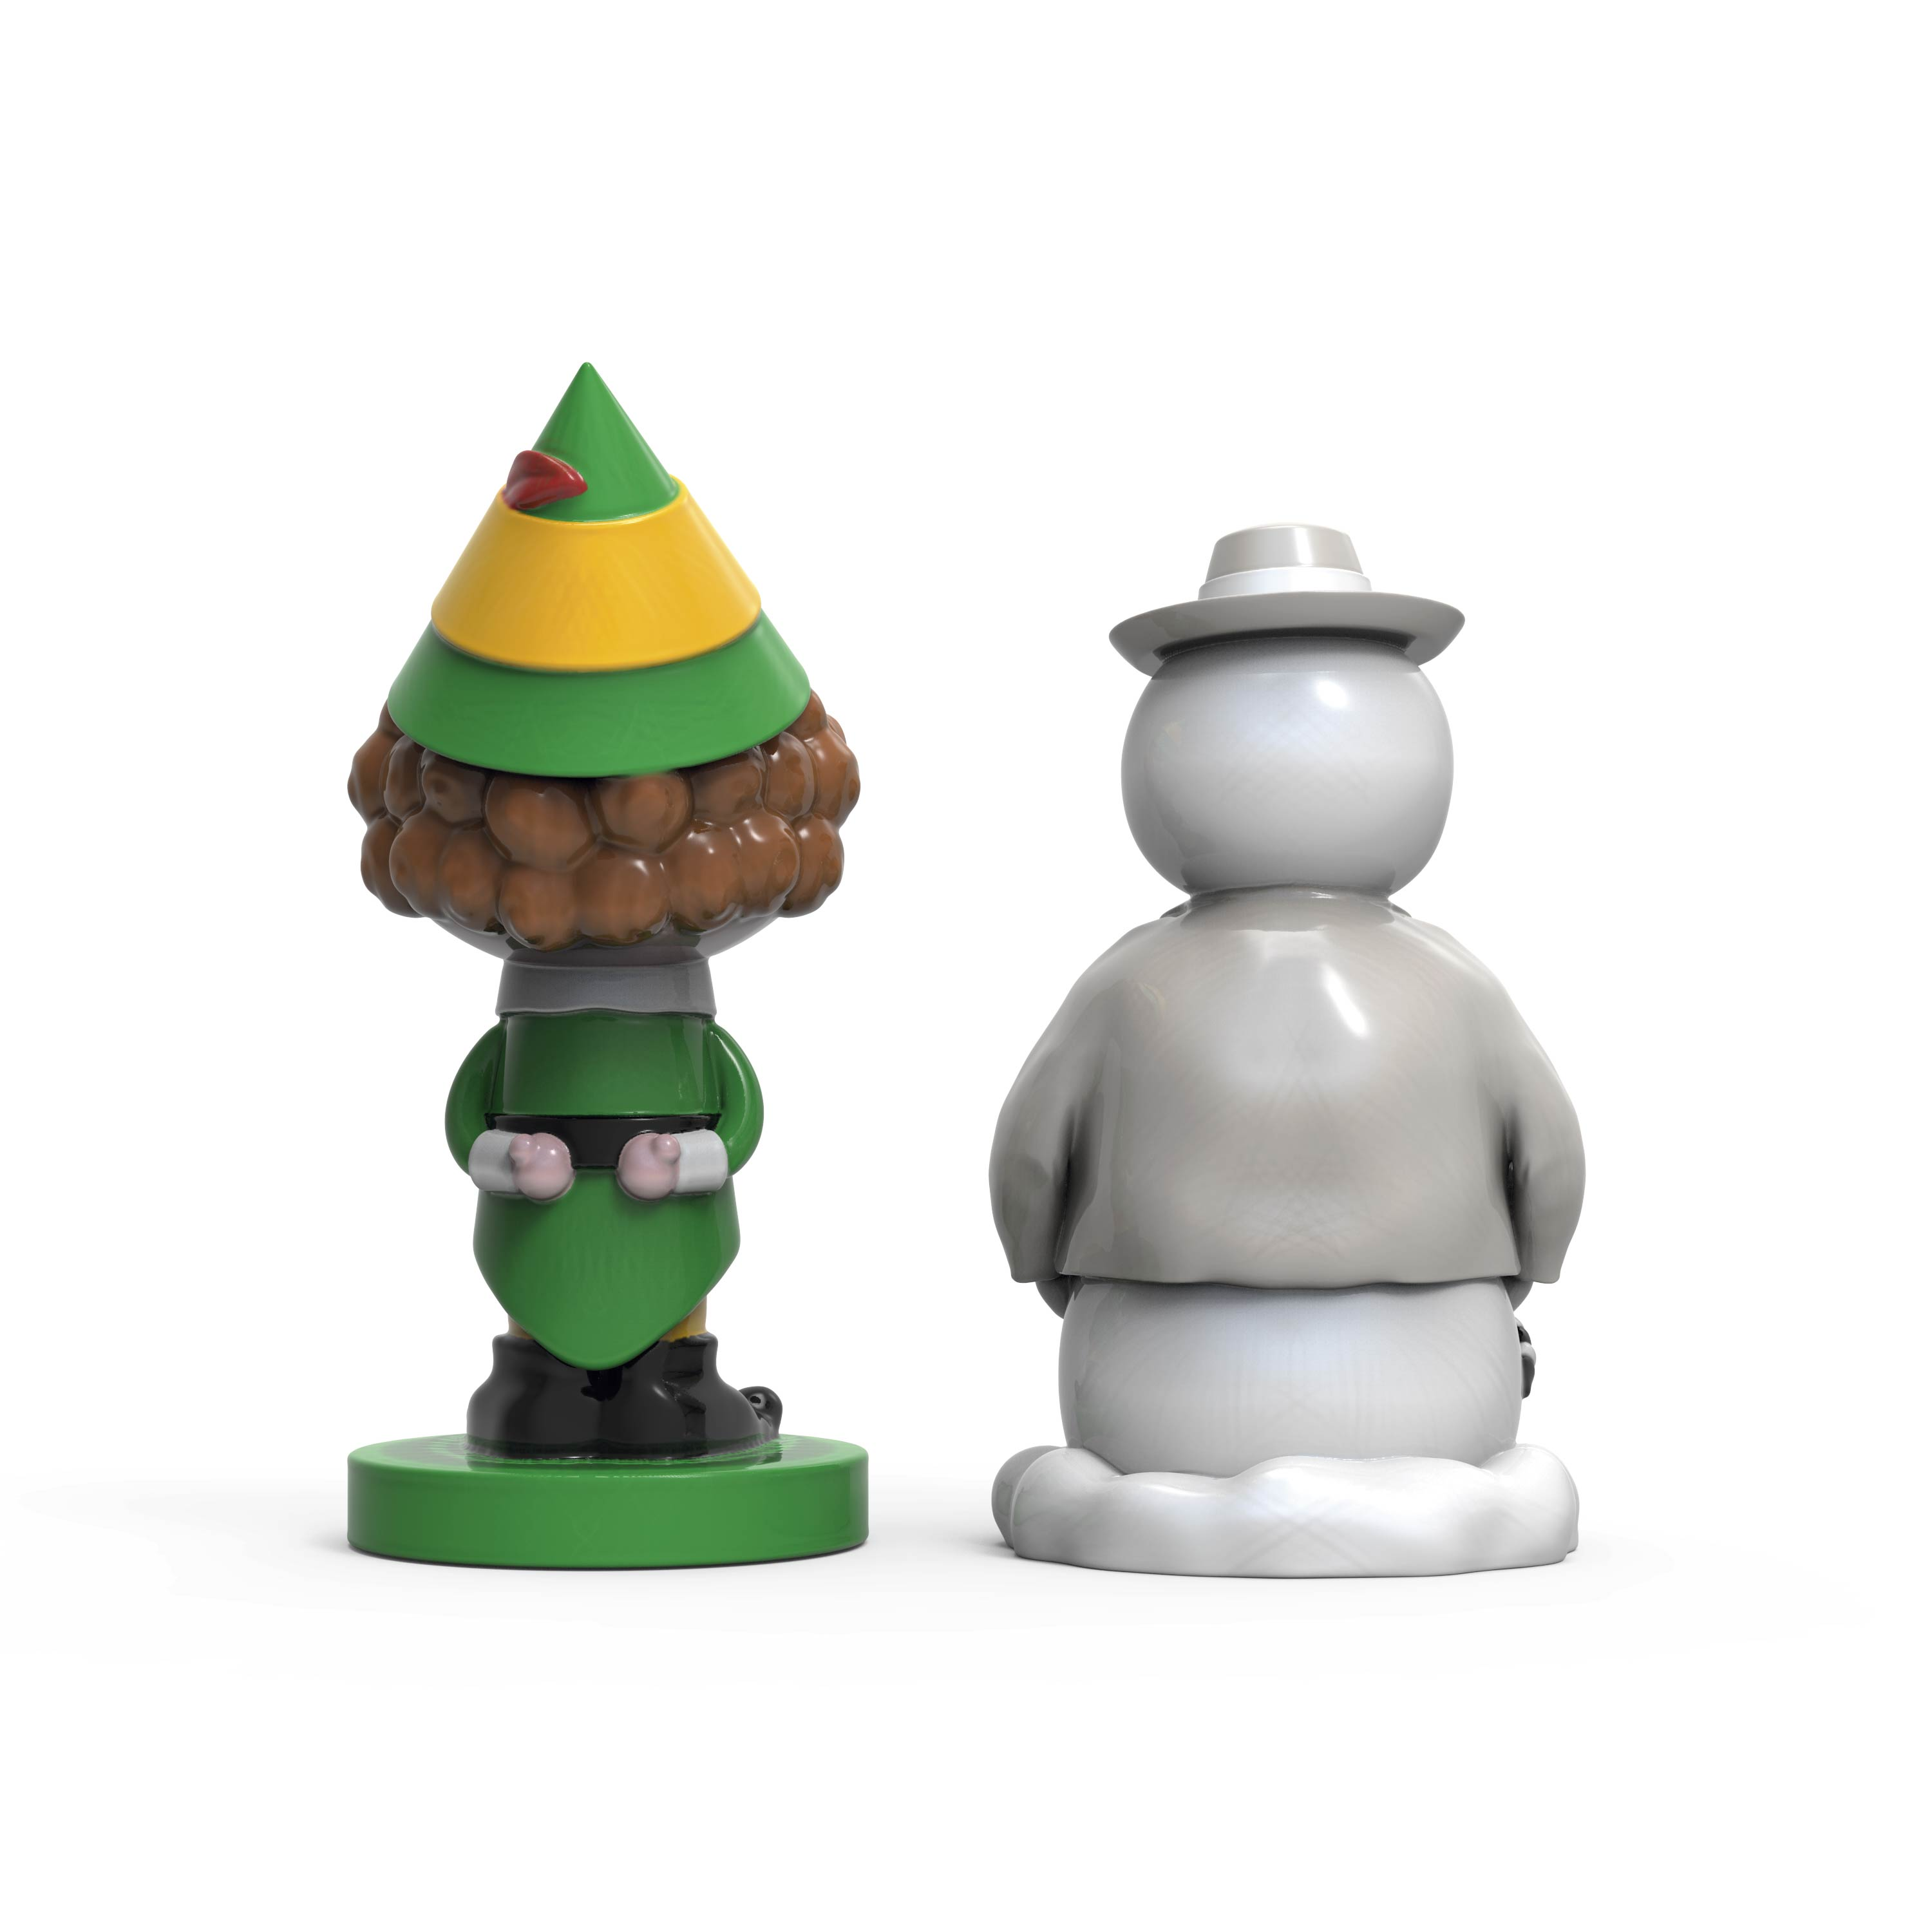 Christmas Collectibles Salt and Pepper Shaker Set, Elf & Snowman, 2-piece set slideshow image 7